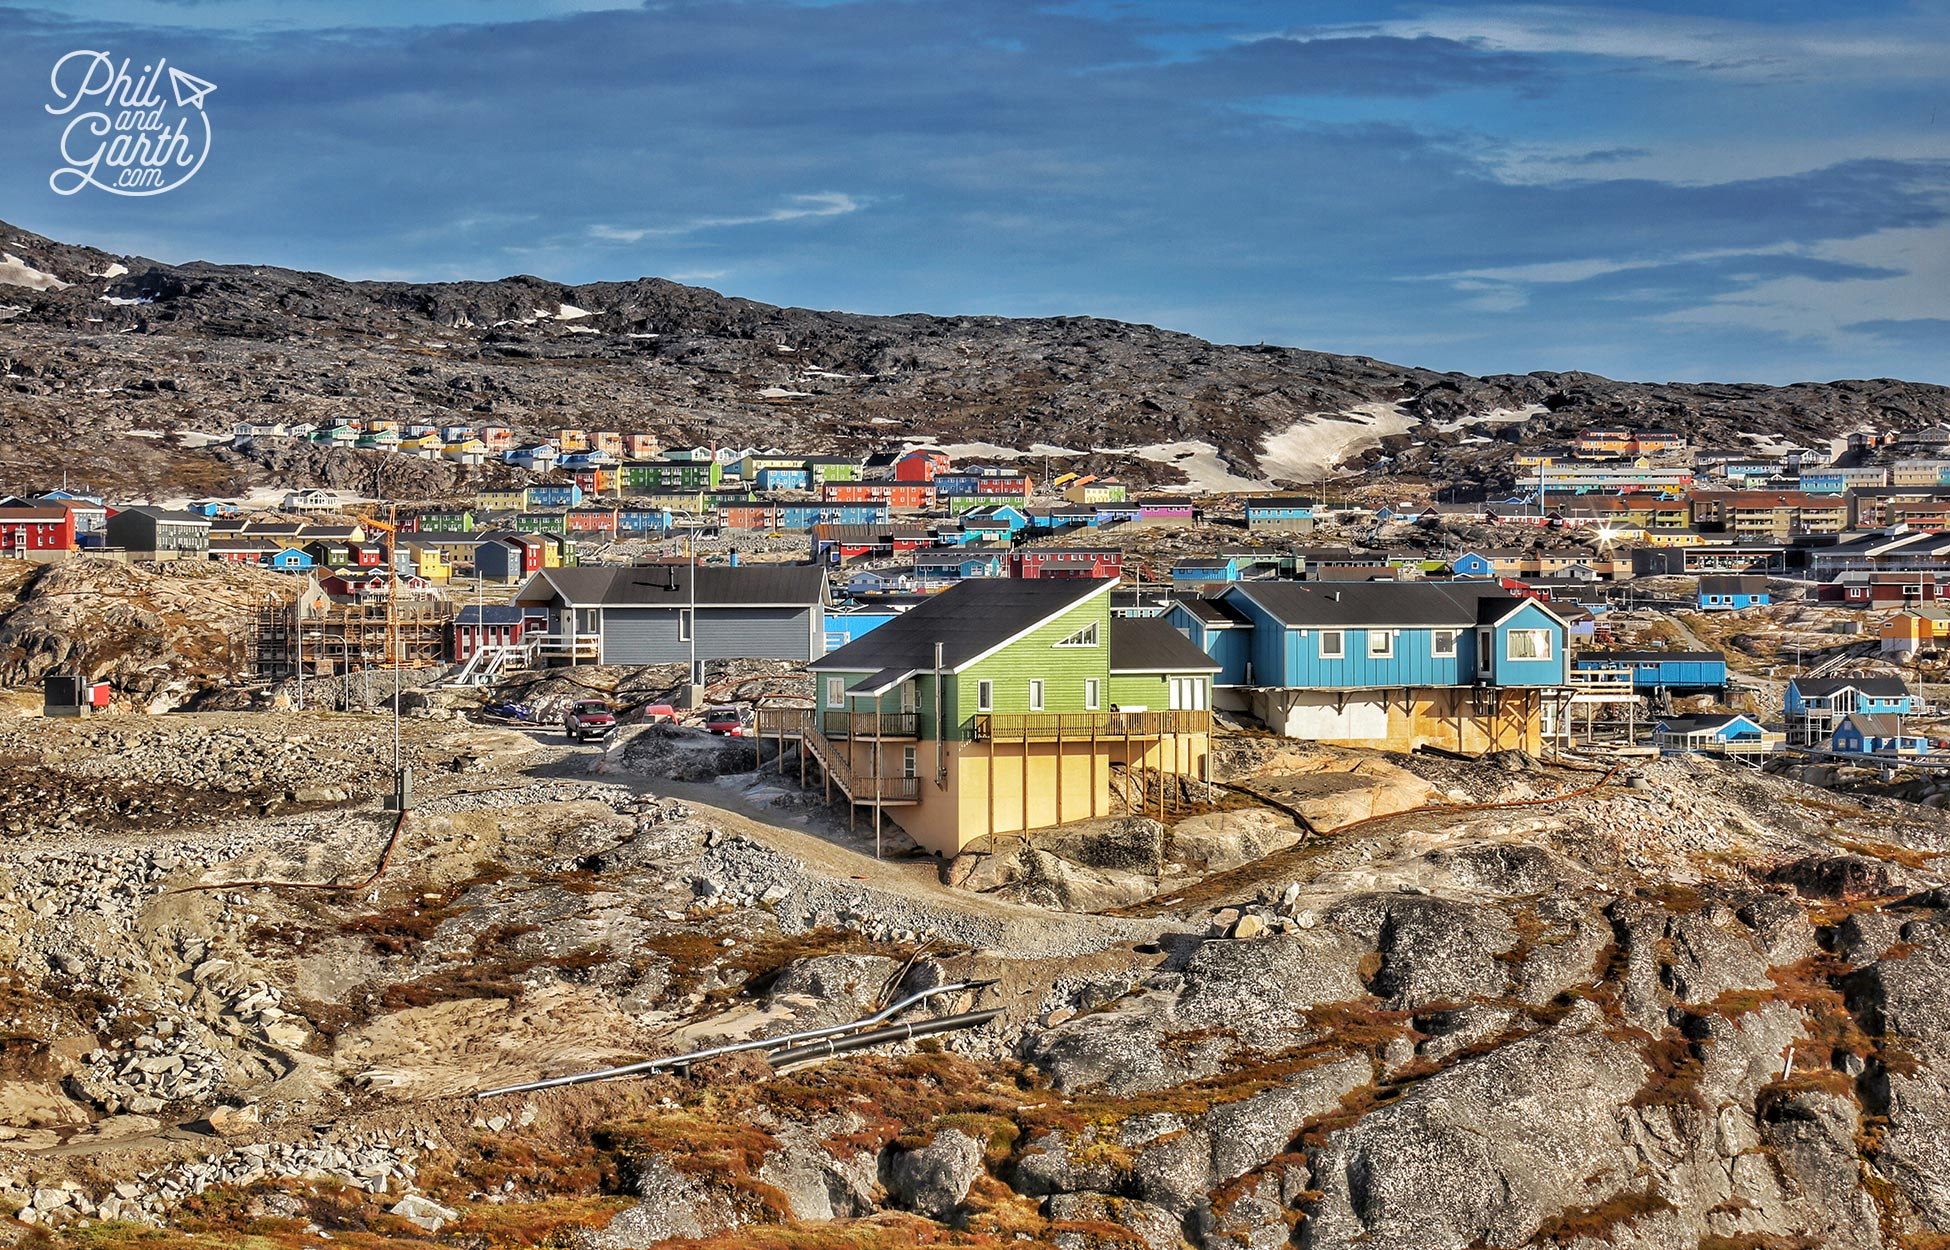 The view of Ilulissat from Hotel Arctic